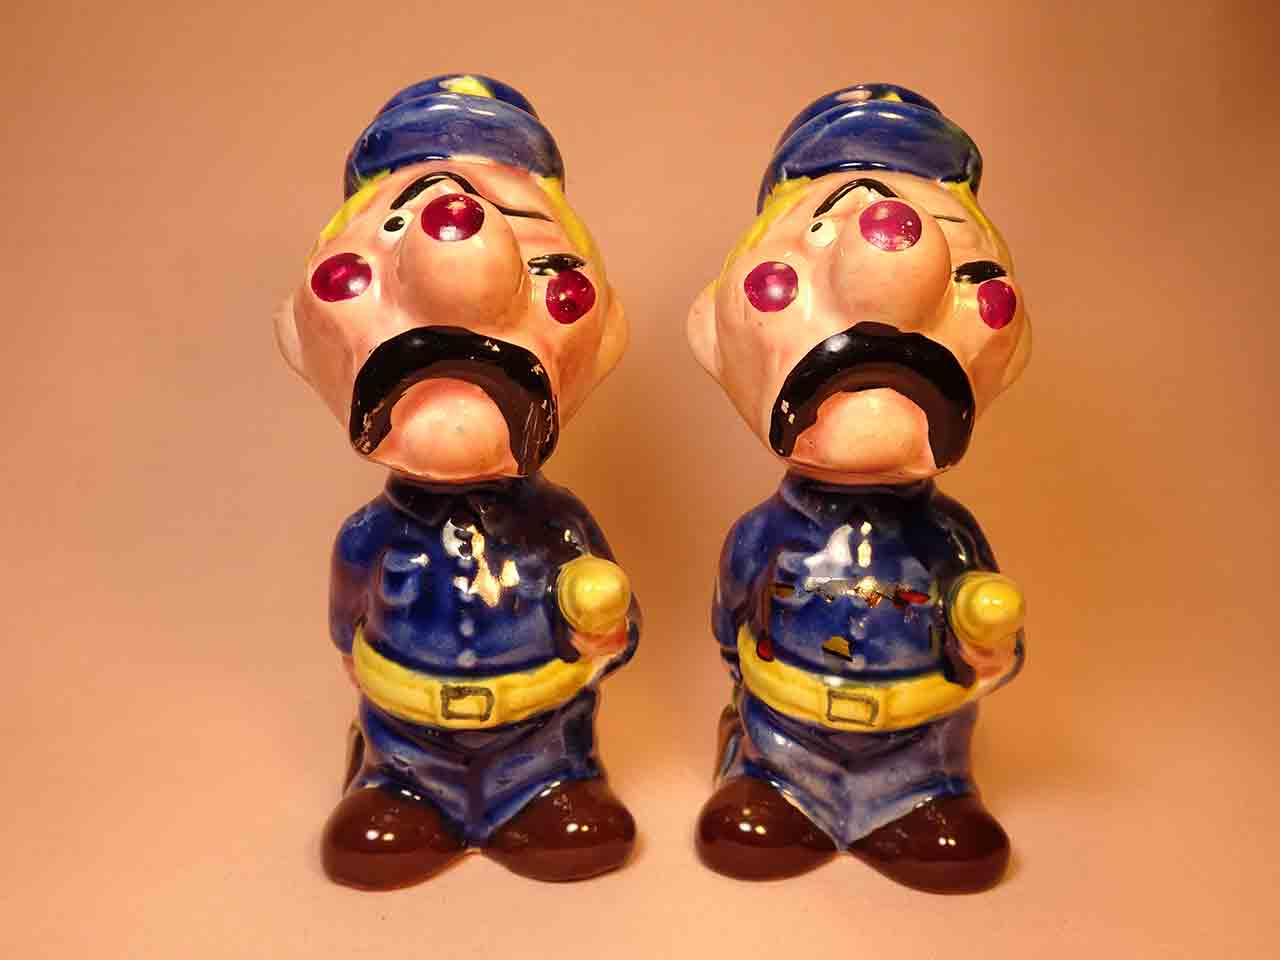 Clown-like strange fellows salt and pepper shakers - police officers